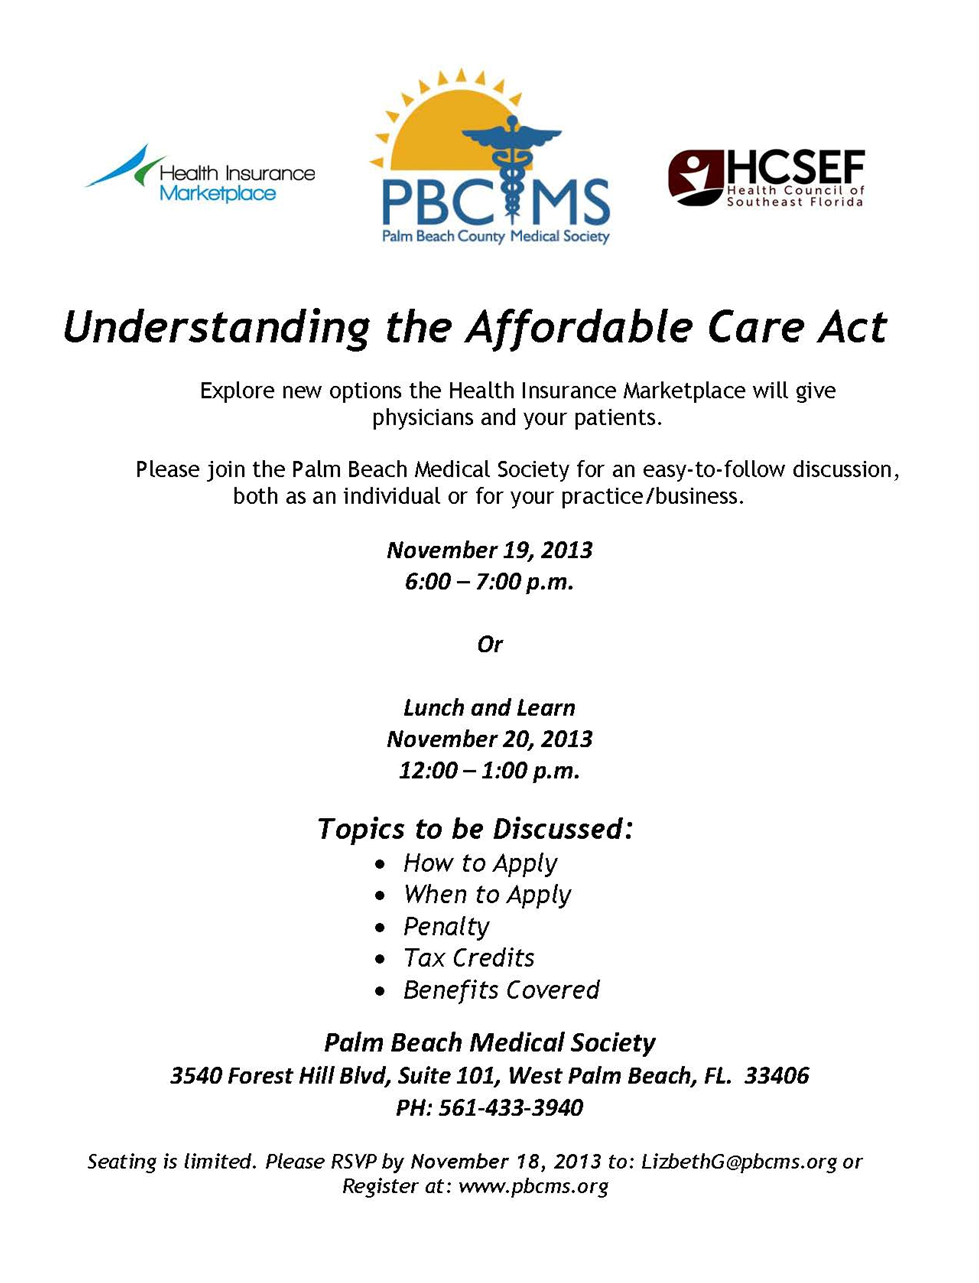 Understanding the Affordable Care Act - Seminar by Palm Beach County Medical Society